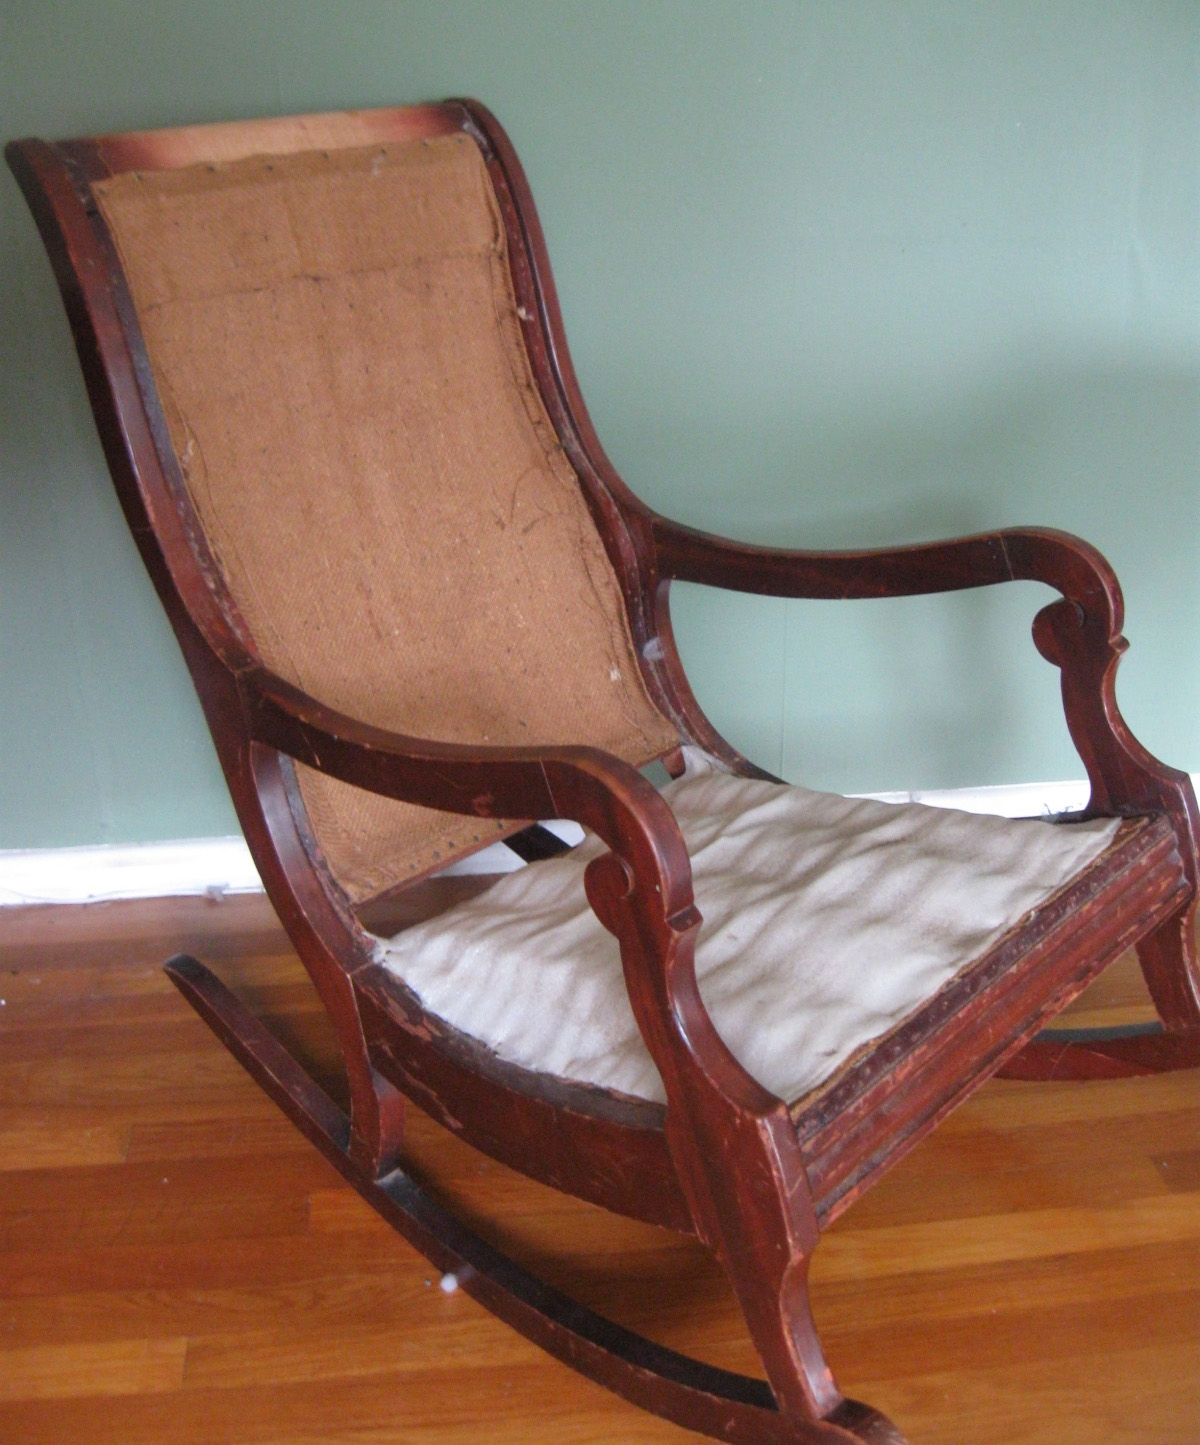 2017 Upholster & Paint A Rocking Chair, Part 1 – Prodigal Pieces For Rocking Chairs With Springs (View 1 of 15)